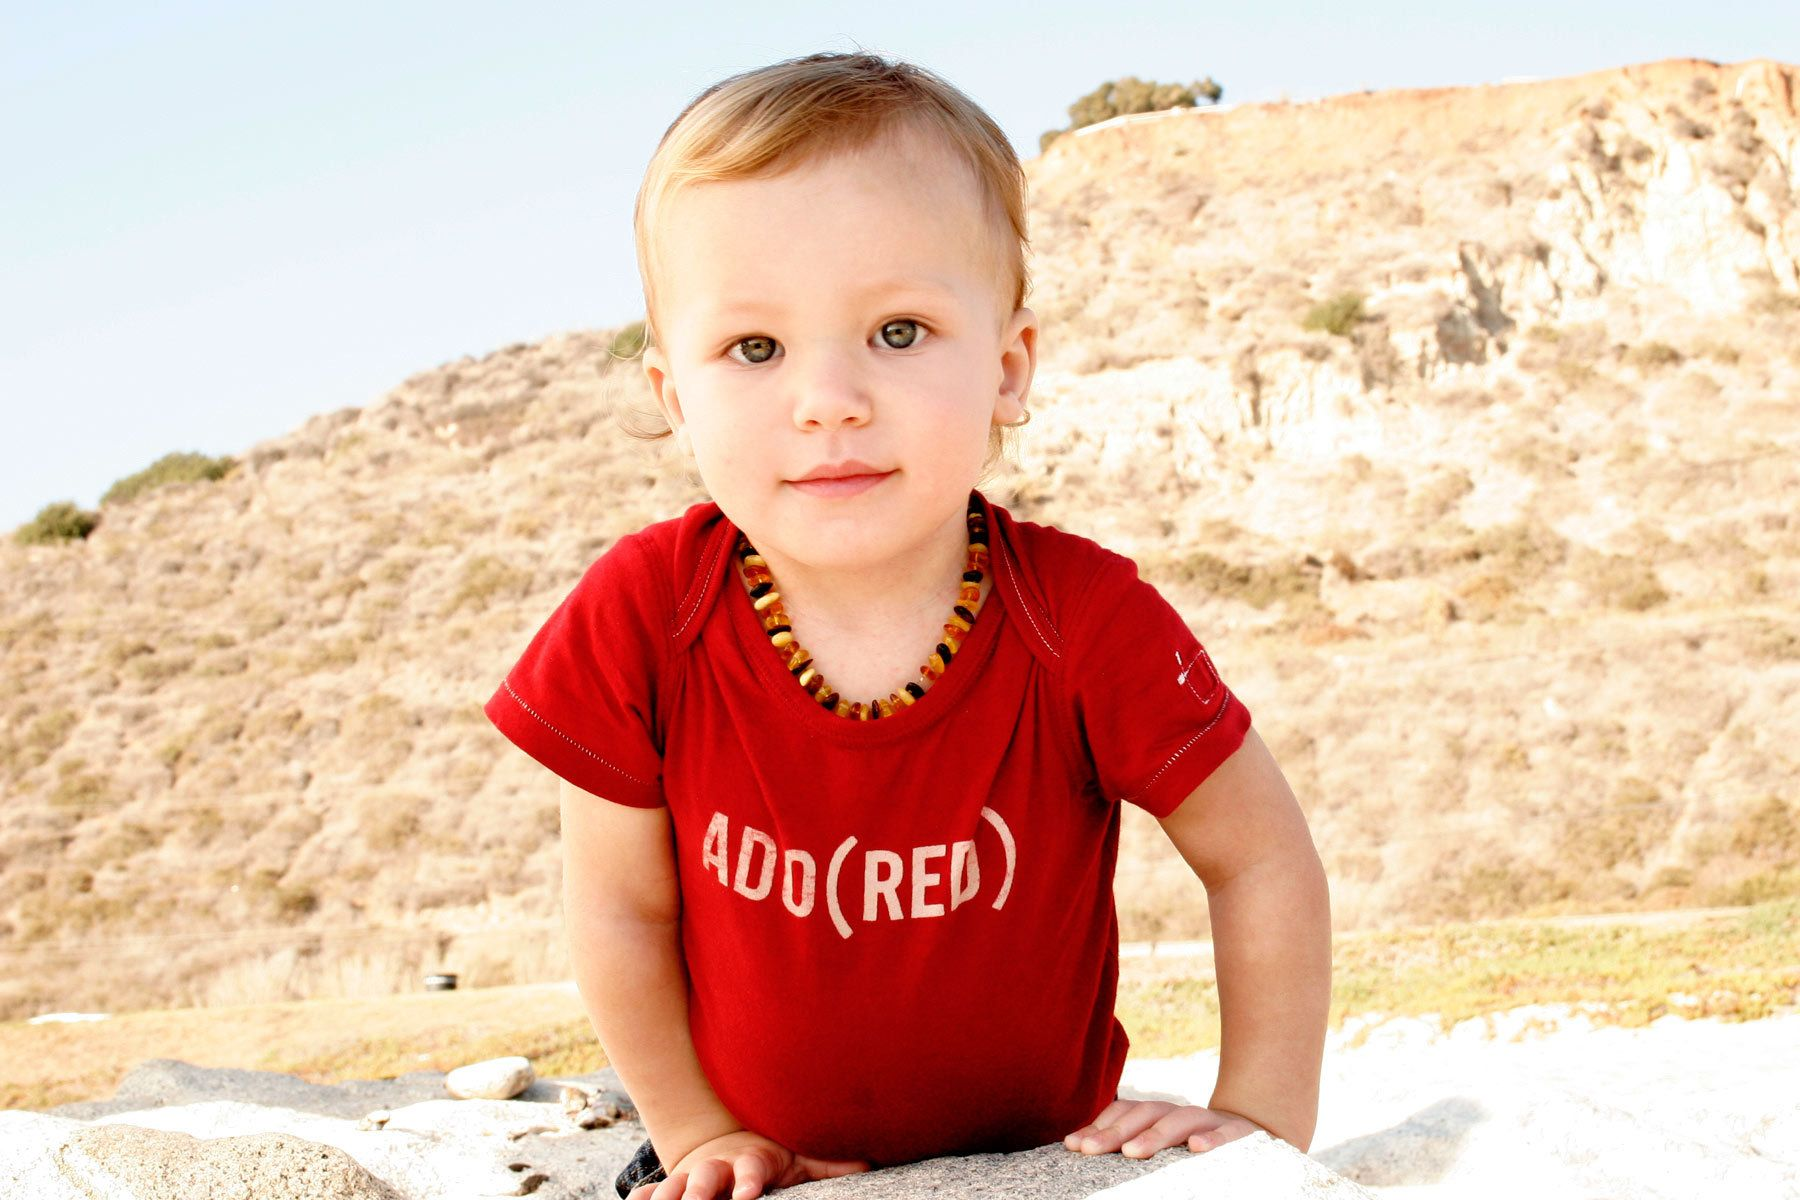 Baby in red Gap T-shirt for fashion lifestyle photo shoot.